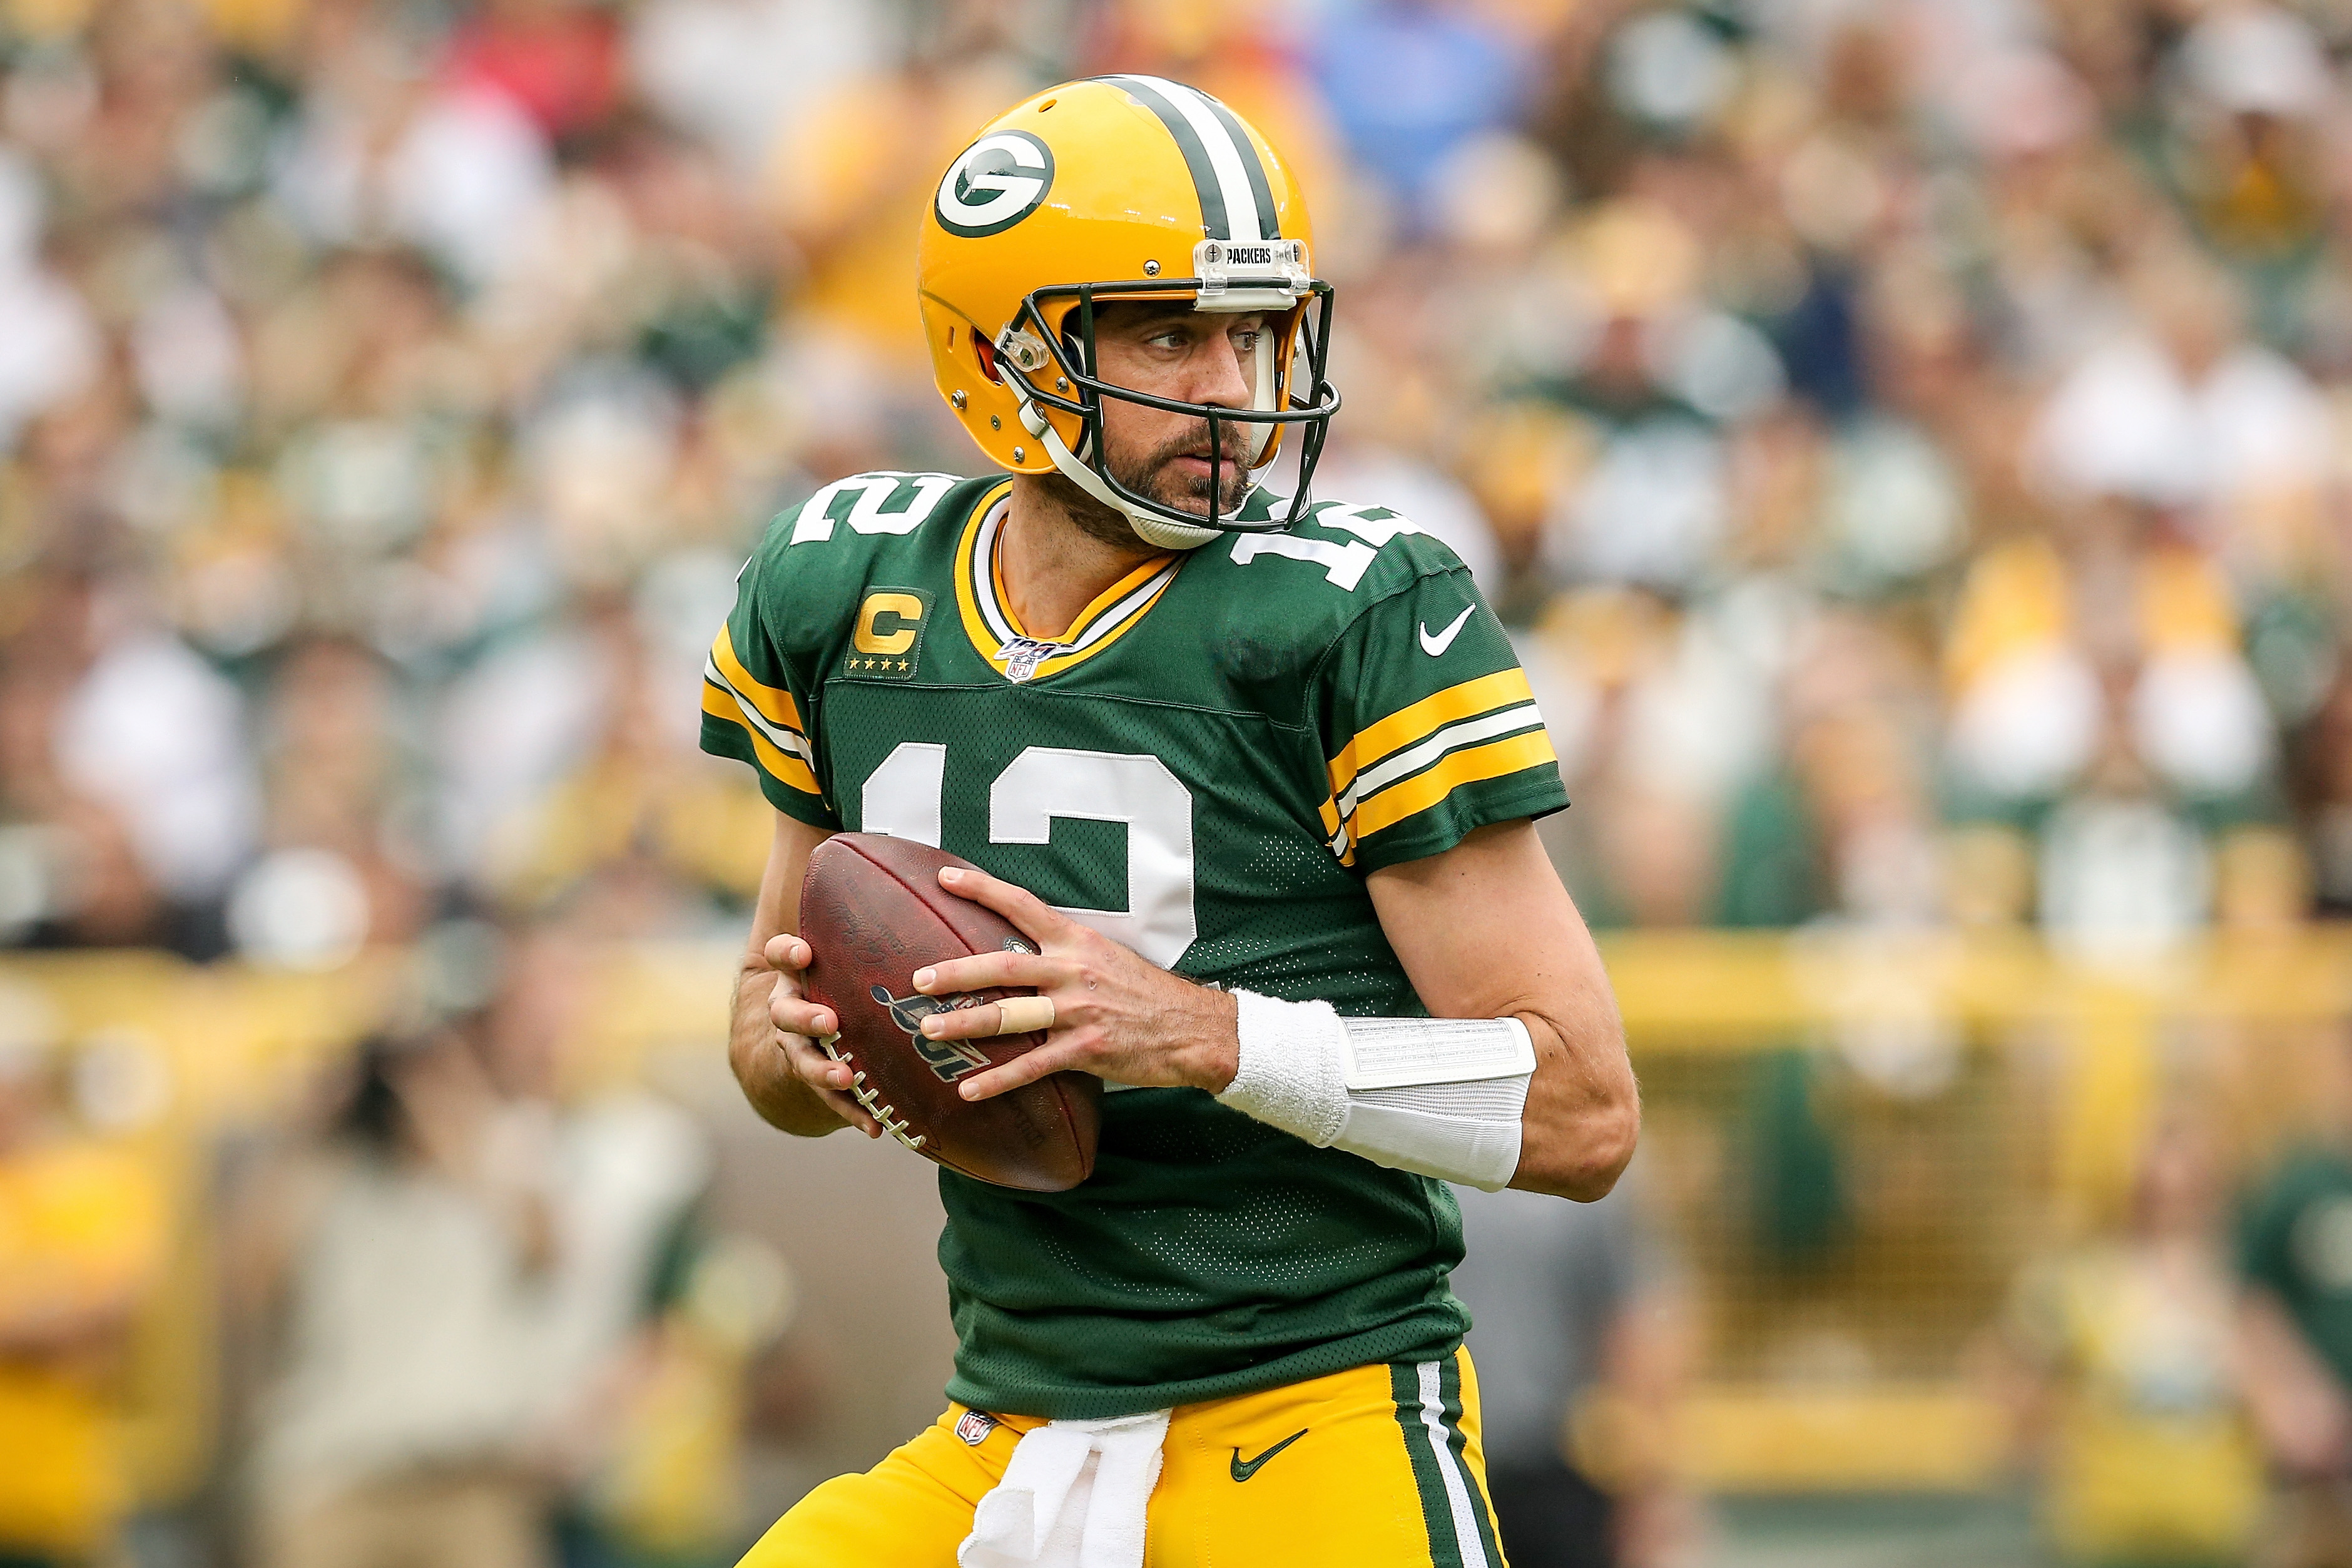 Matt LaFleur's Packers offense sure looks a lot like Mike McCarthy's, at least early on